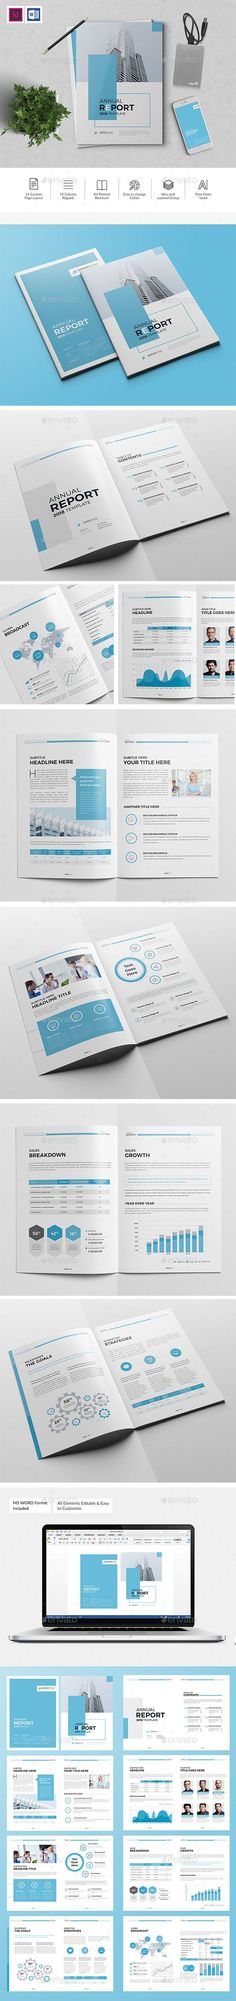 The Blue Annual Report Template InDesign INDD